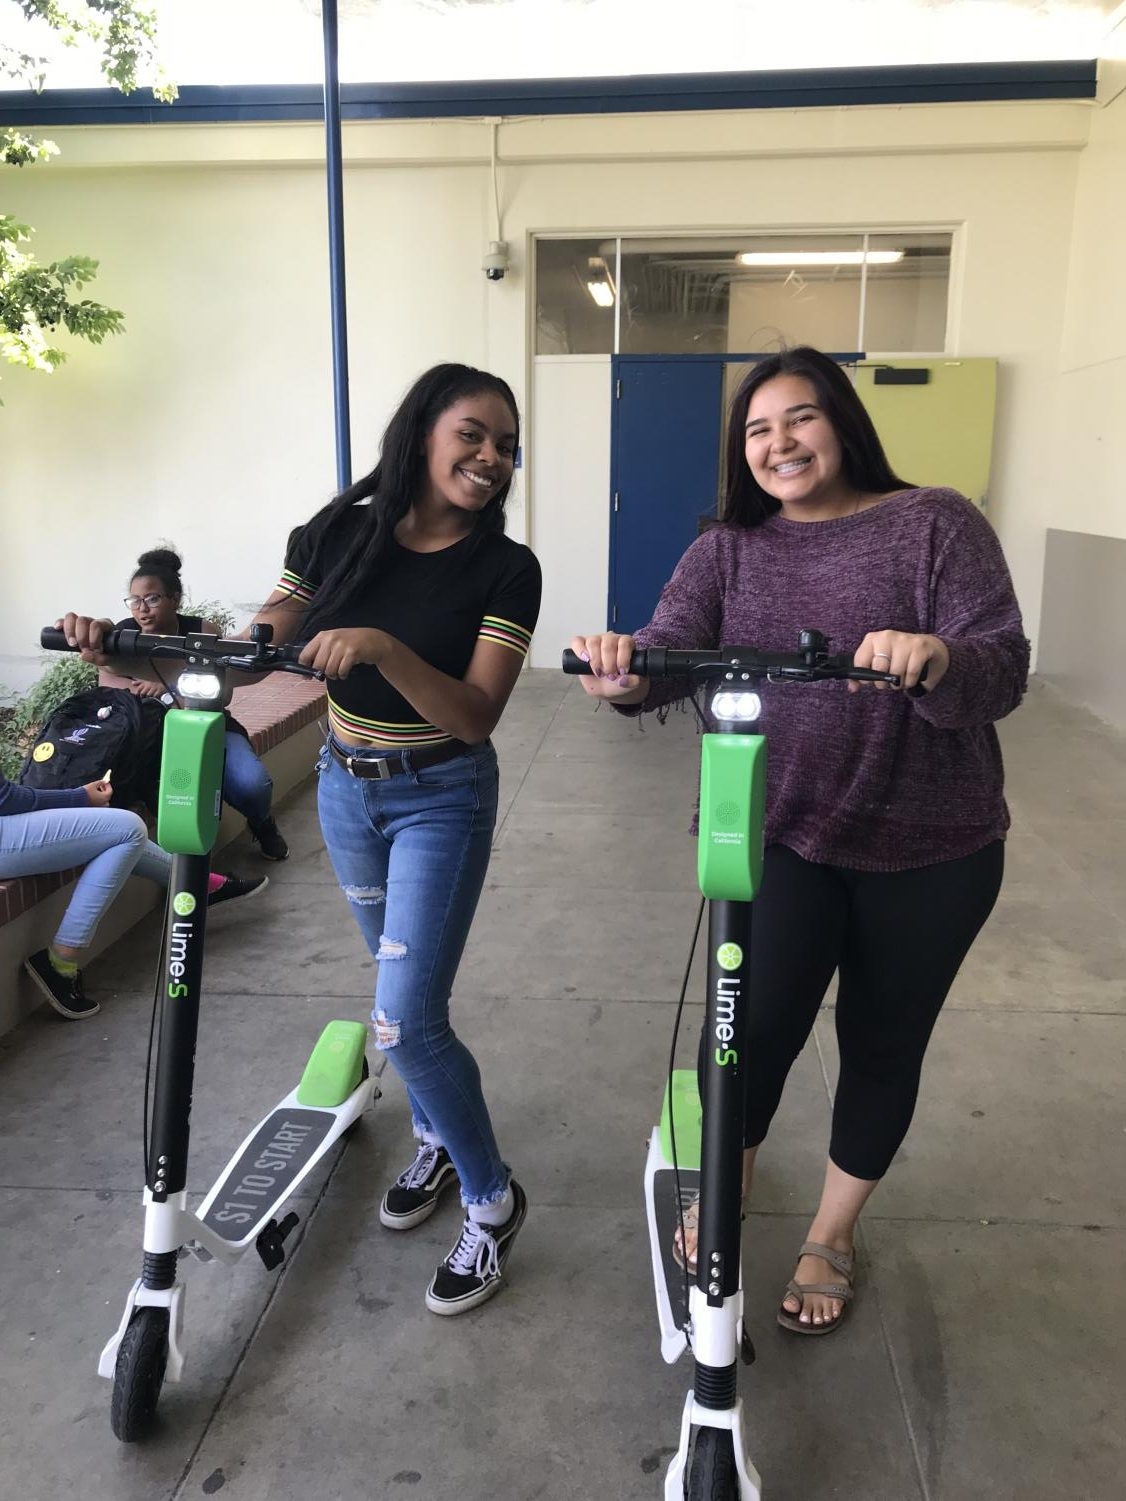 Alexis Smith, left, and Miki Lopez, right, pose with two Lime scooters September 12, 2018 in front of the Main Gym. Recently, students have been riding these scooters to school often. (Nancy Quintana / Lincoln Lion Tales)